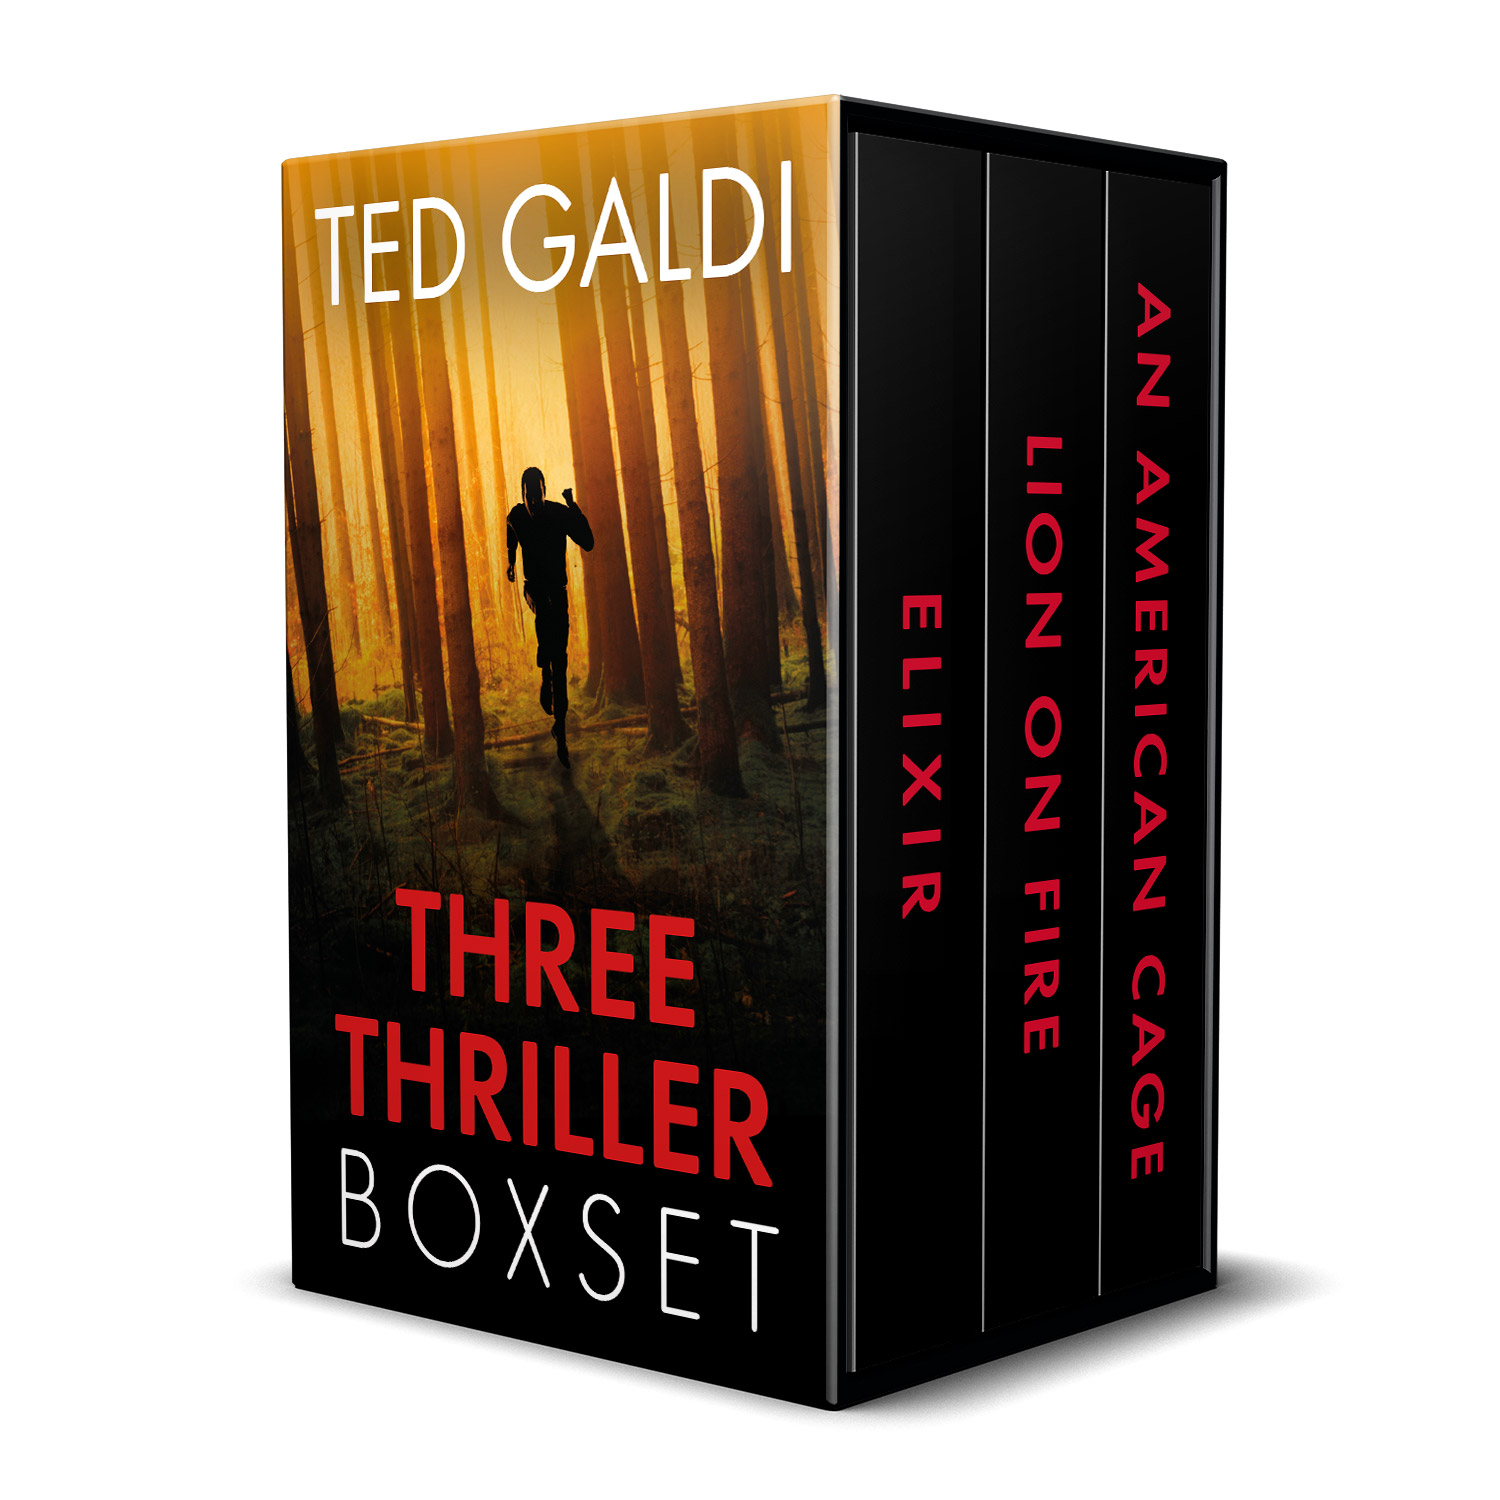 The 'Ted Galdi Three Thriller Boxset' is an ebook boxset containing three, previously-published American thrillers. The virtual boxset design and interior ebook formatting were completed by Mark Thomas, of coverness.com. To find out more about my book design services, please visit www.coverness.com